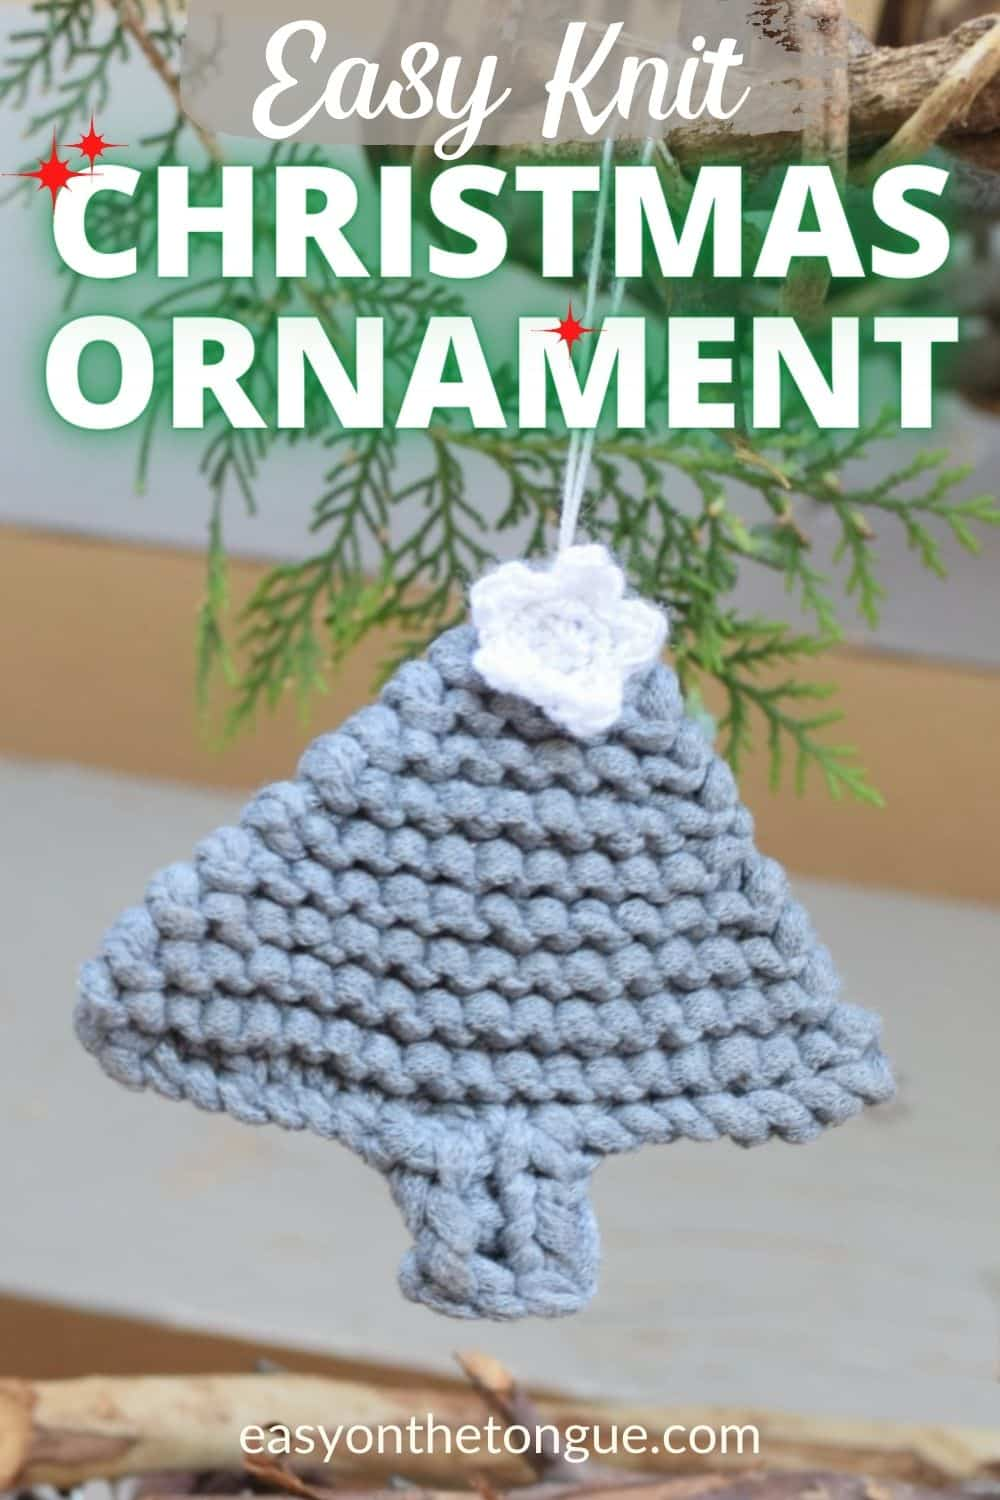 Knit A Flat Christmas Tree To Hang As An Ornament